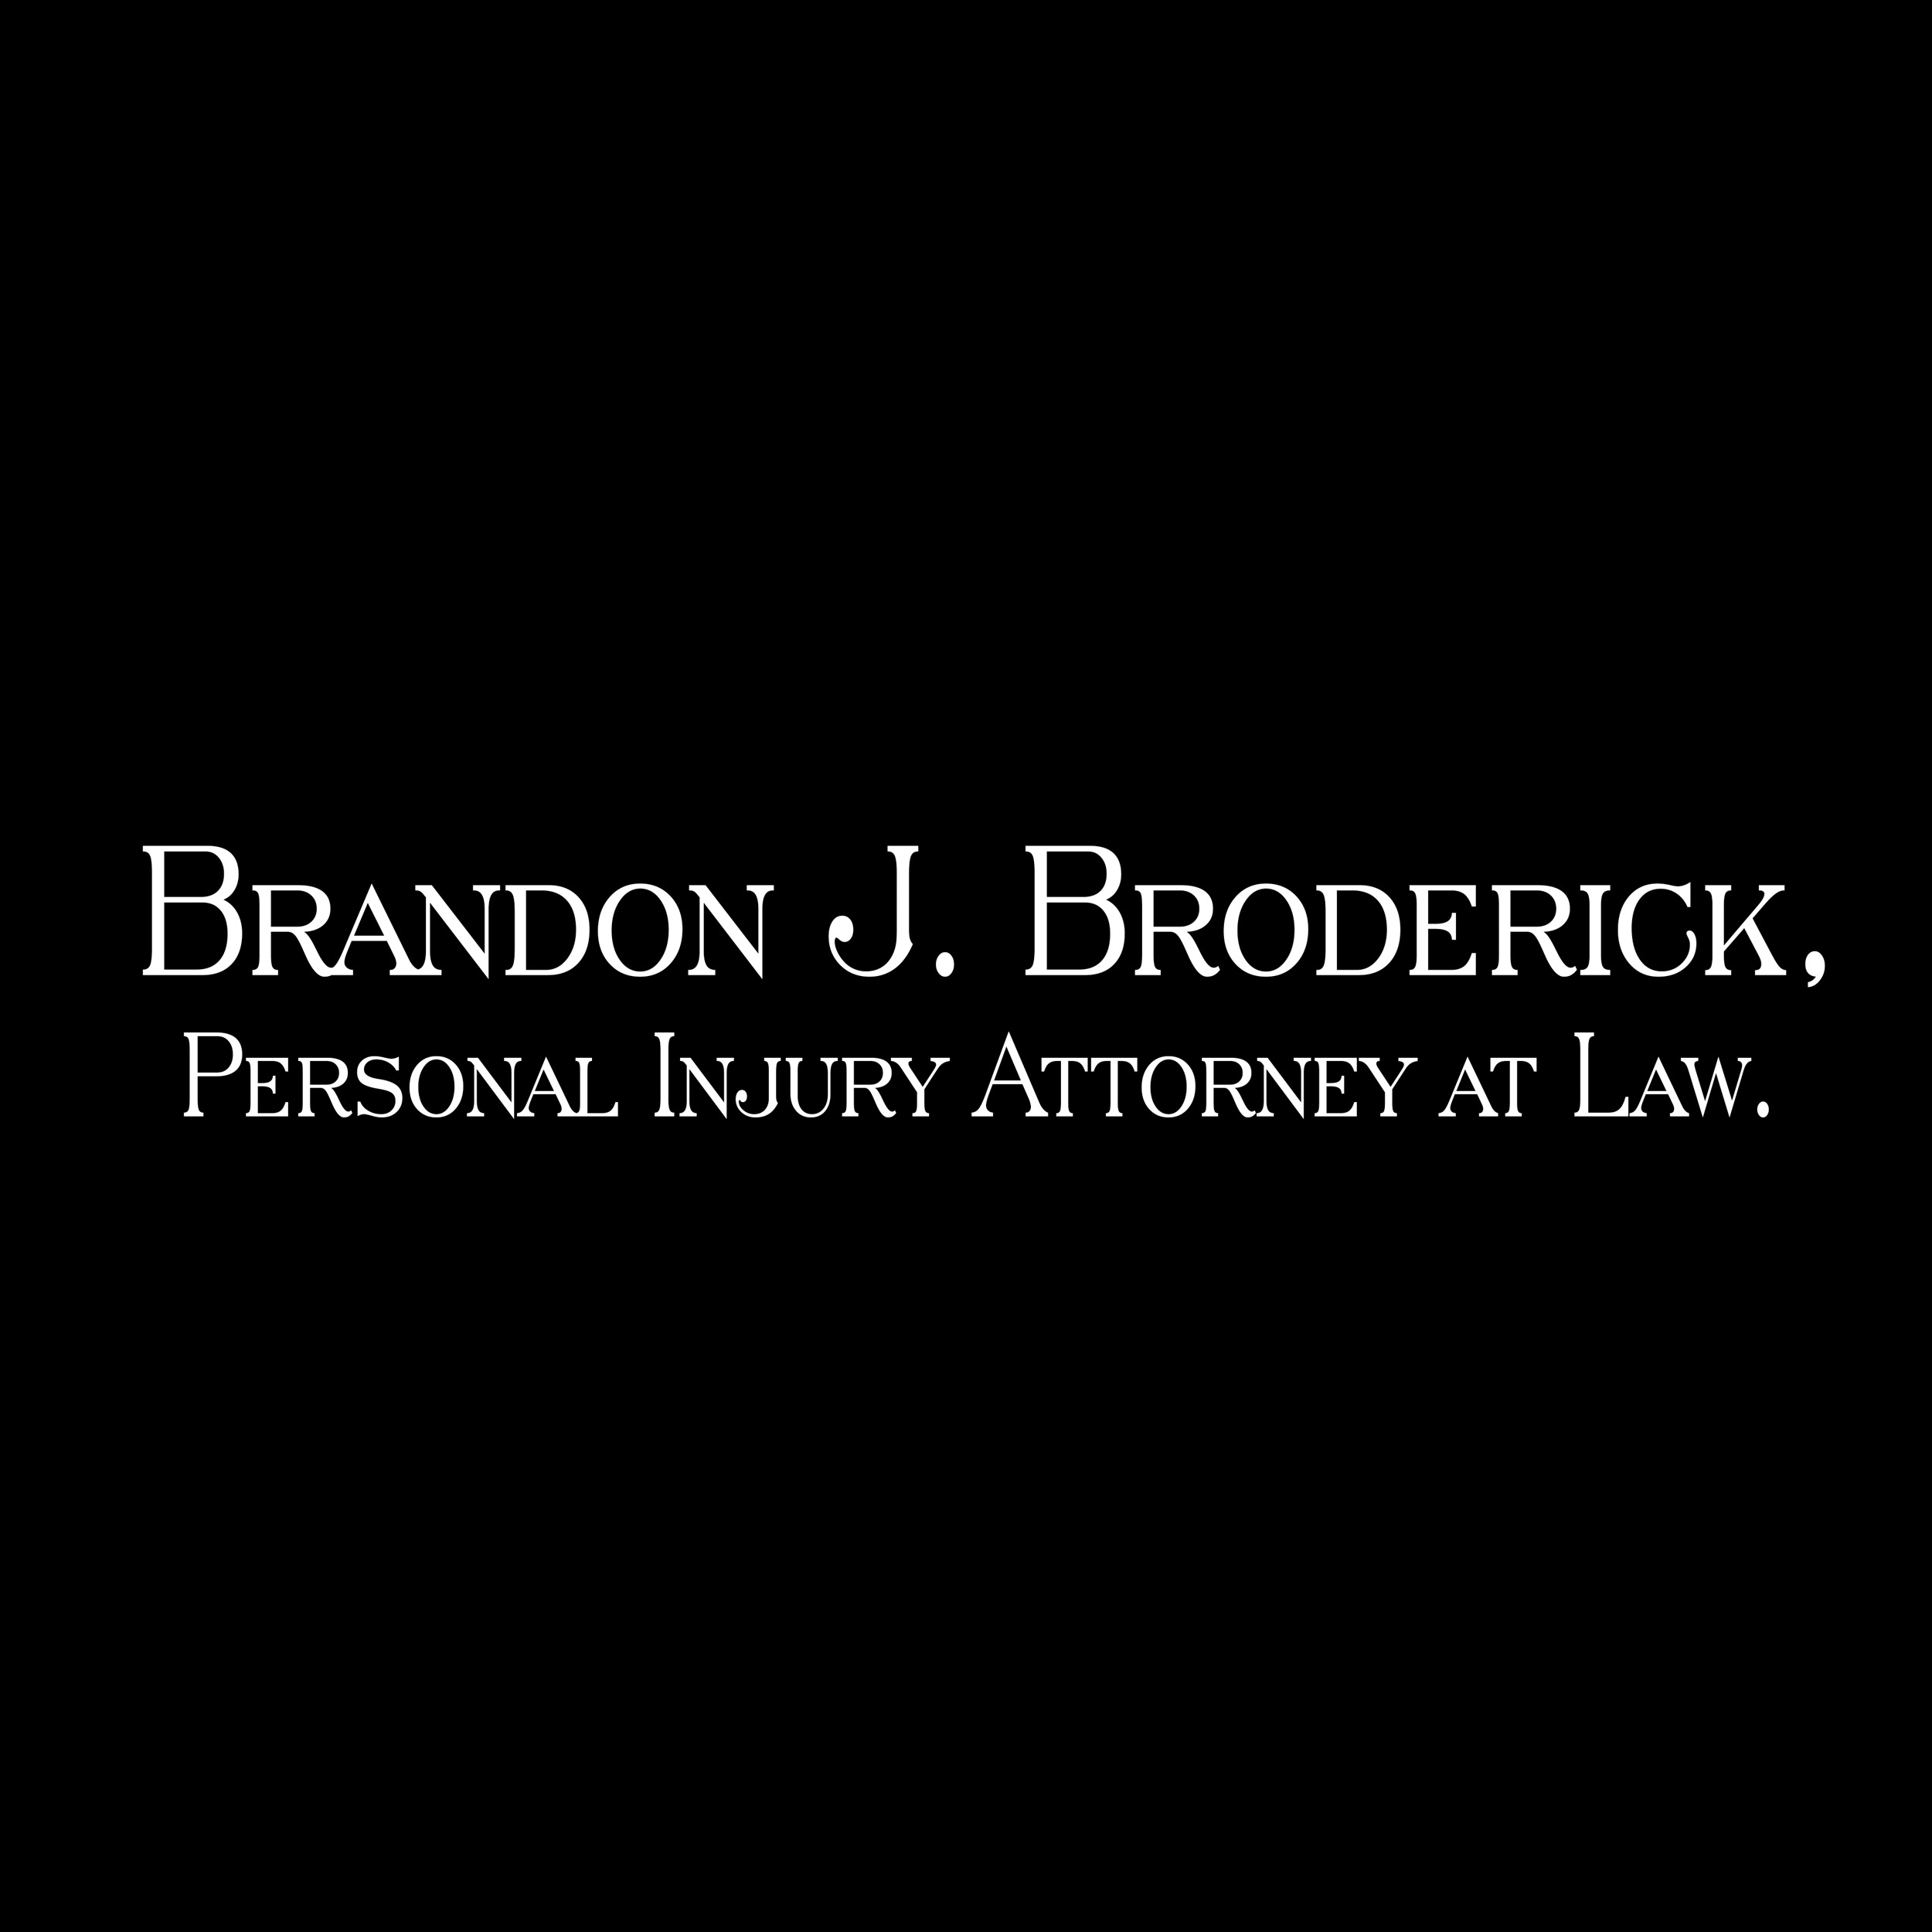 Brandon J. Broderick, Personal Injury Attorney at Law